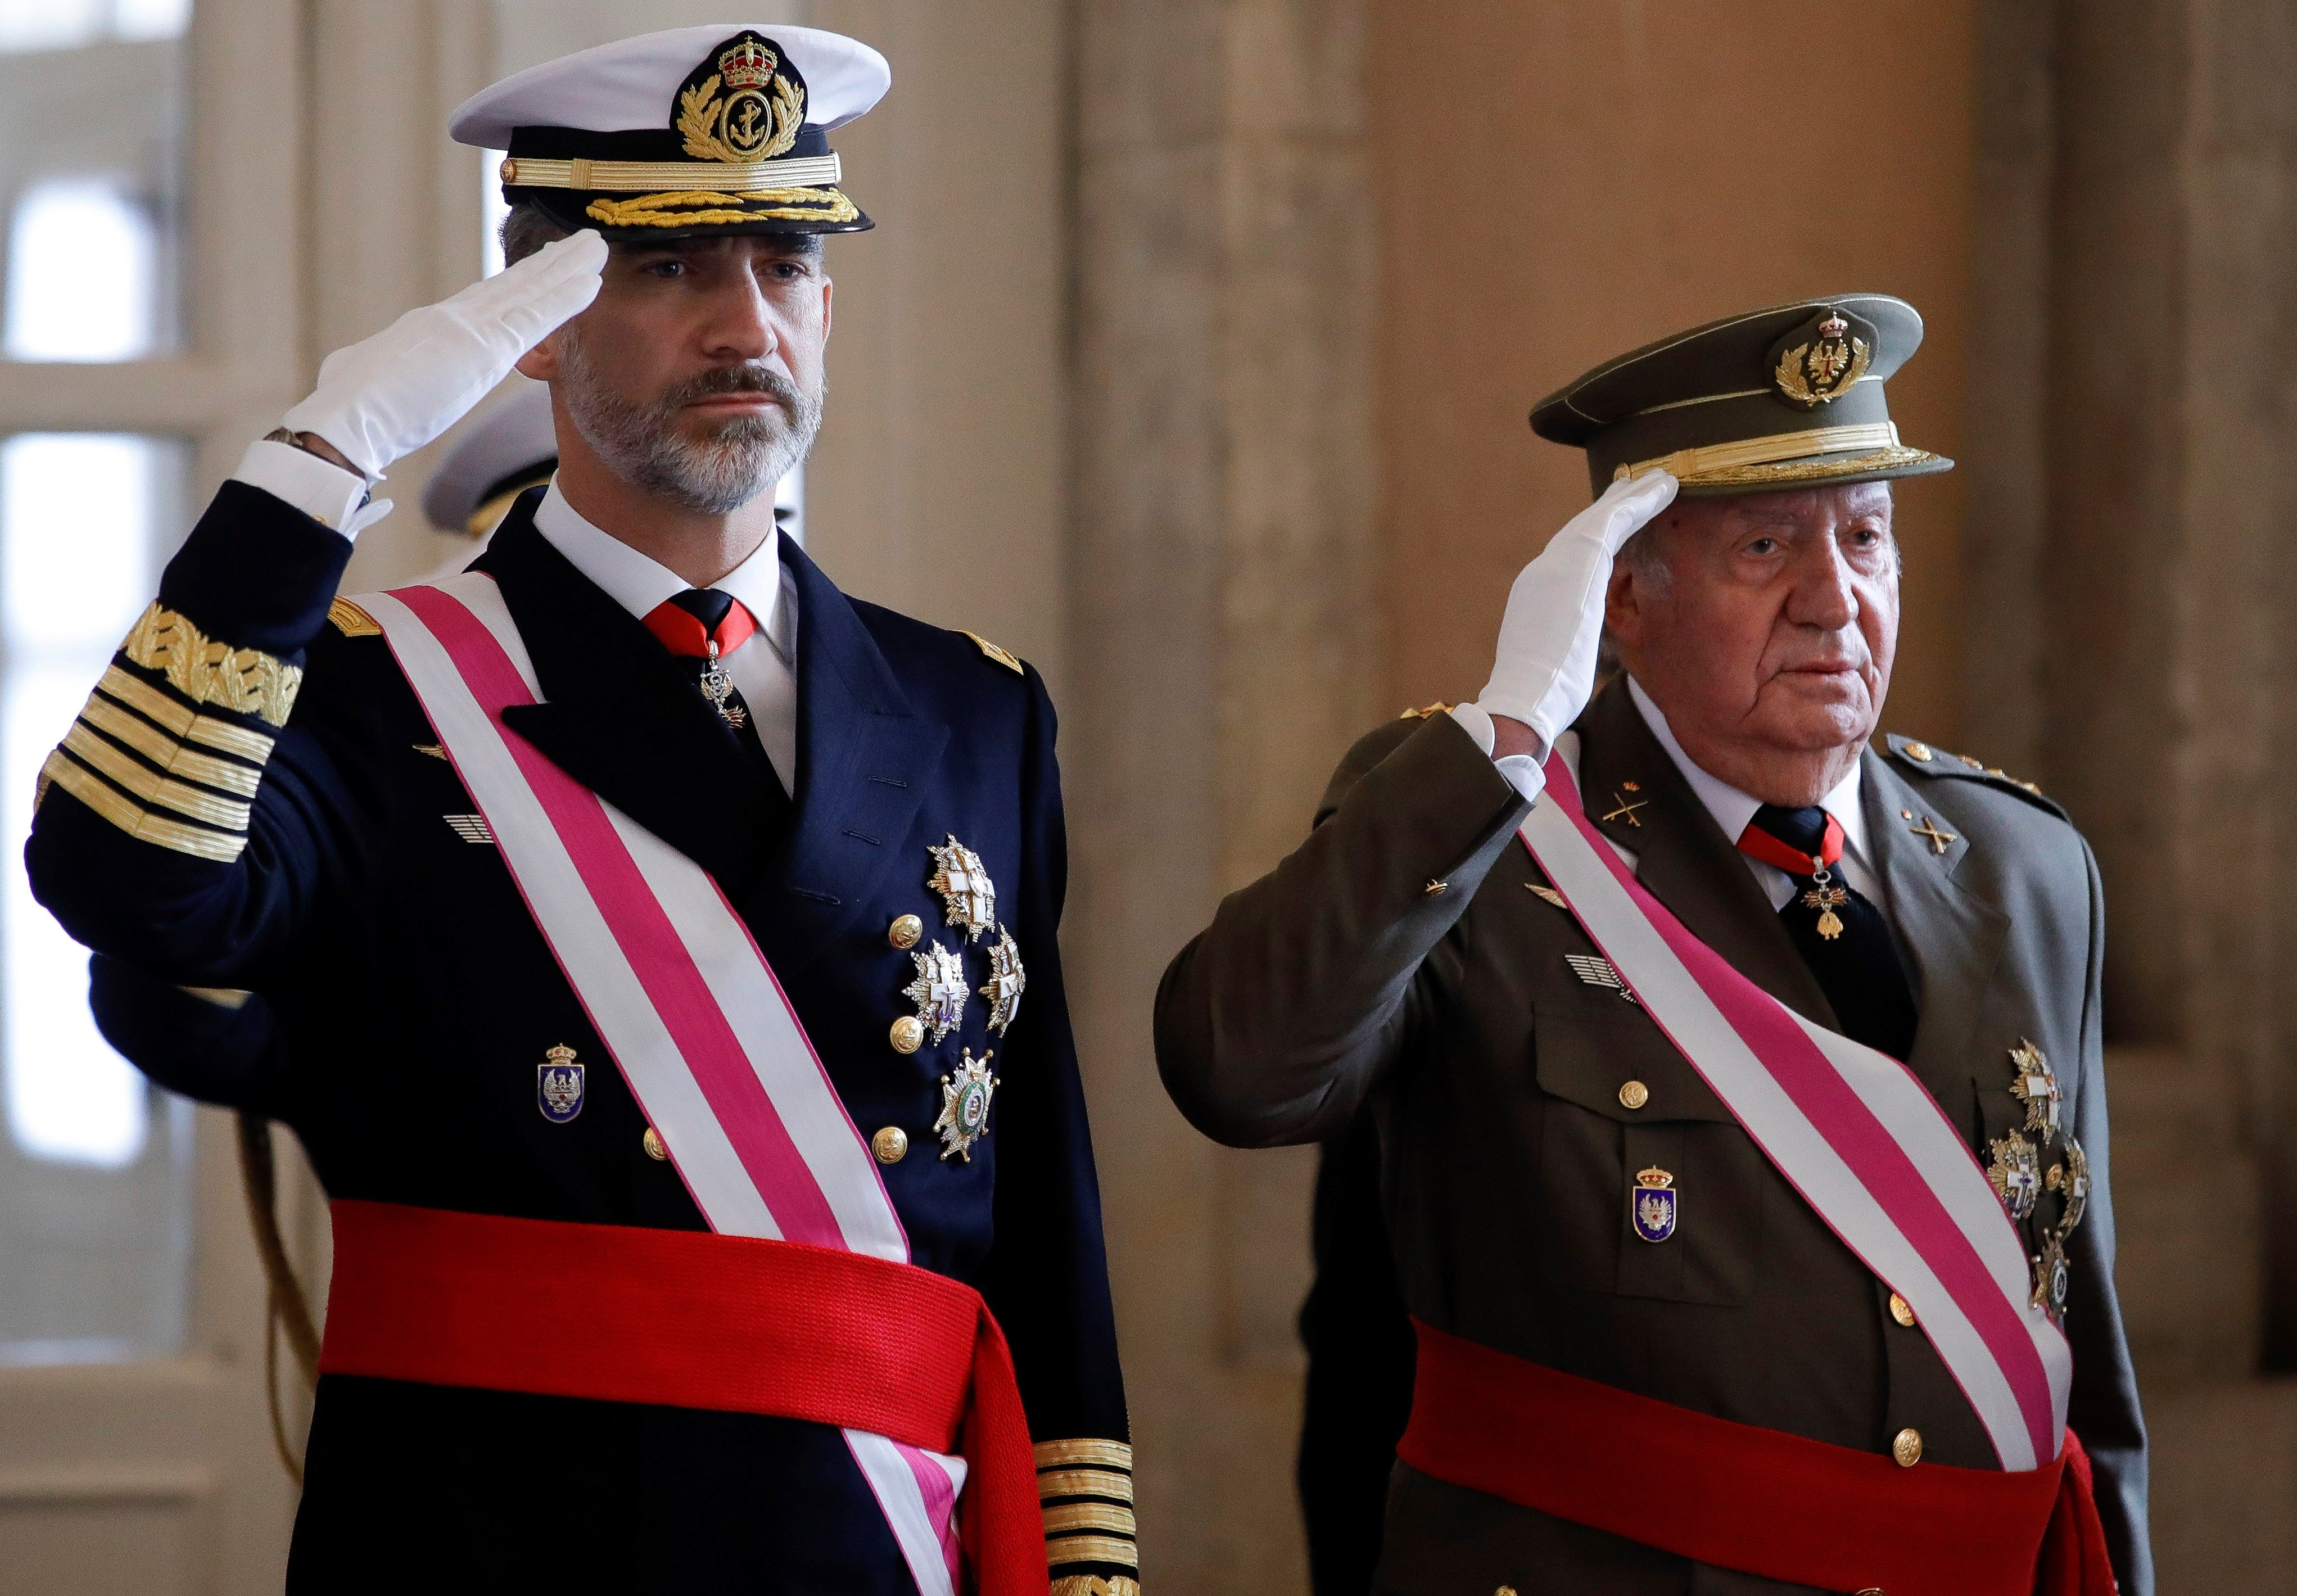 Spain's King Felipe VI and his father Juan Carlos I salute during Epiphany Day celebrations at the Royal Palace in Madrid on Jan. 6, 2018.